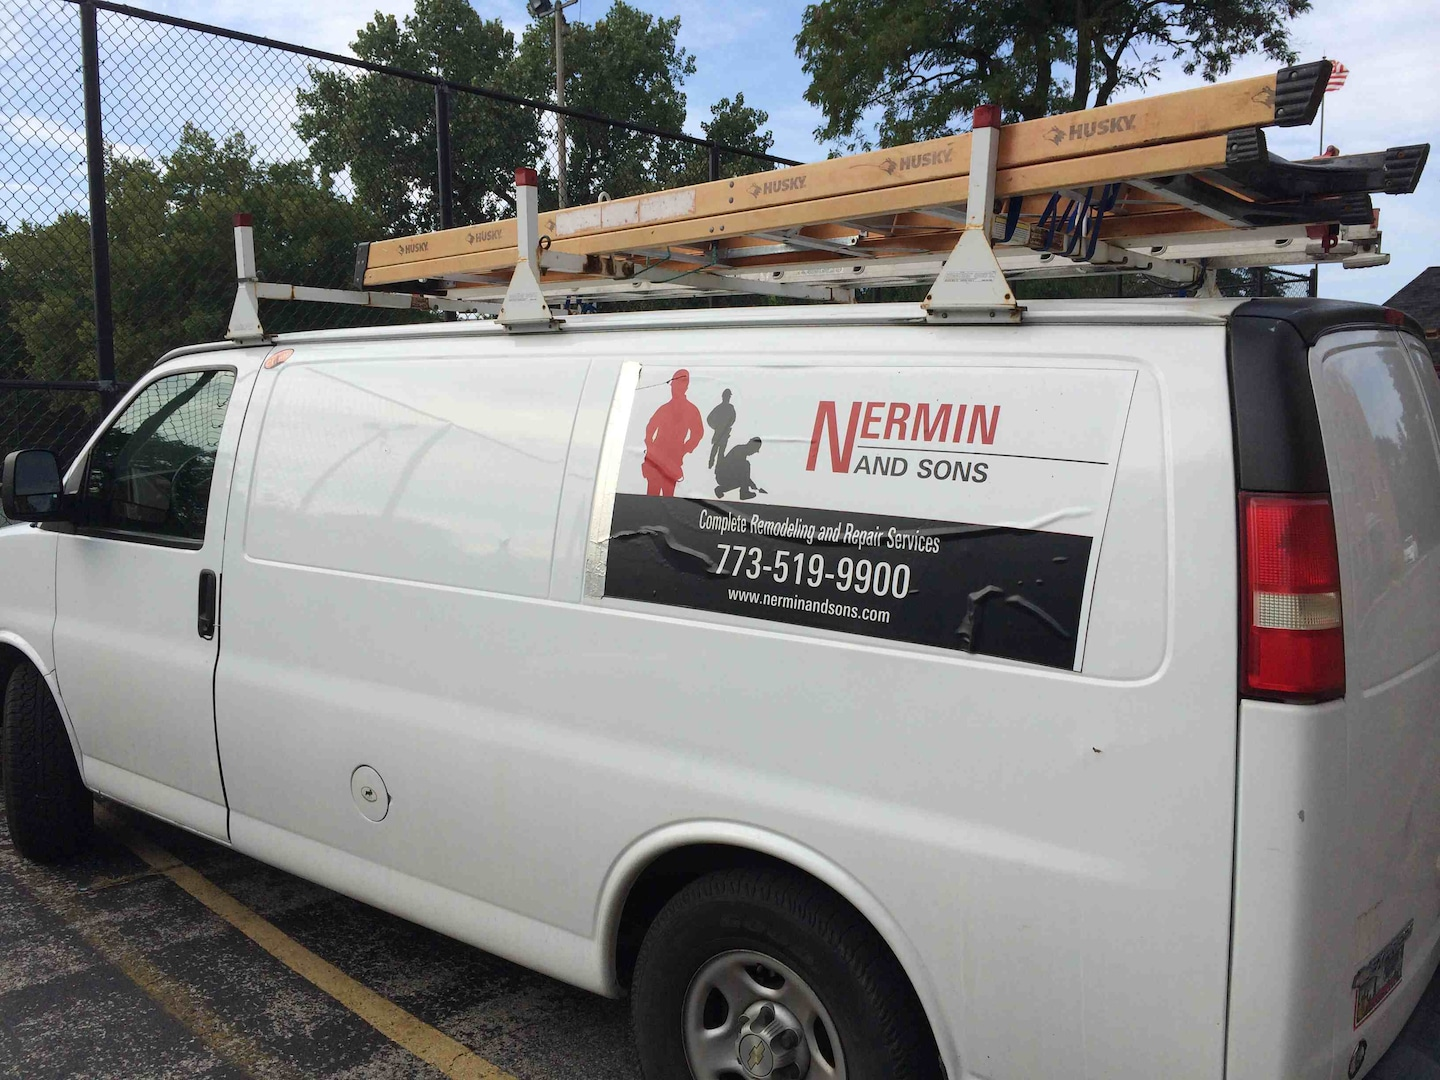 Nermin and Sons Handyman Inc